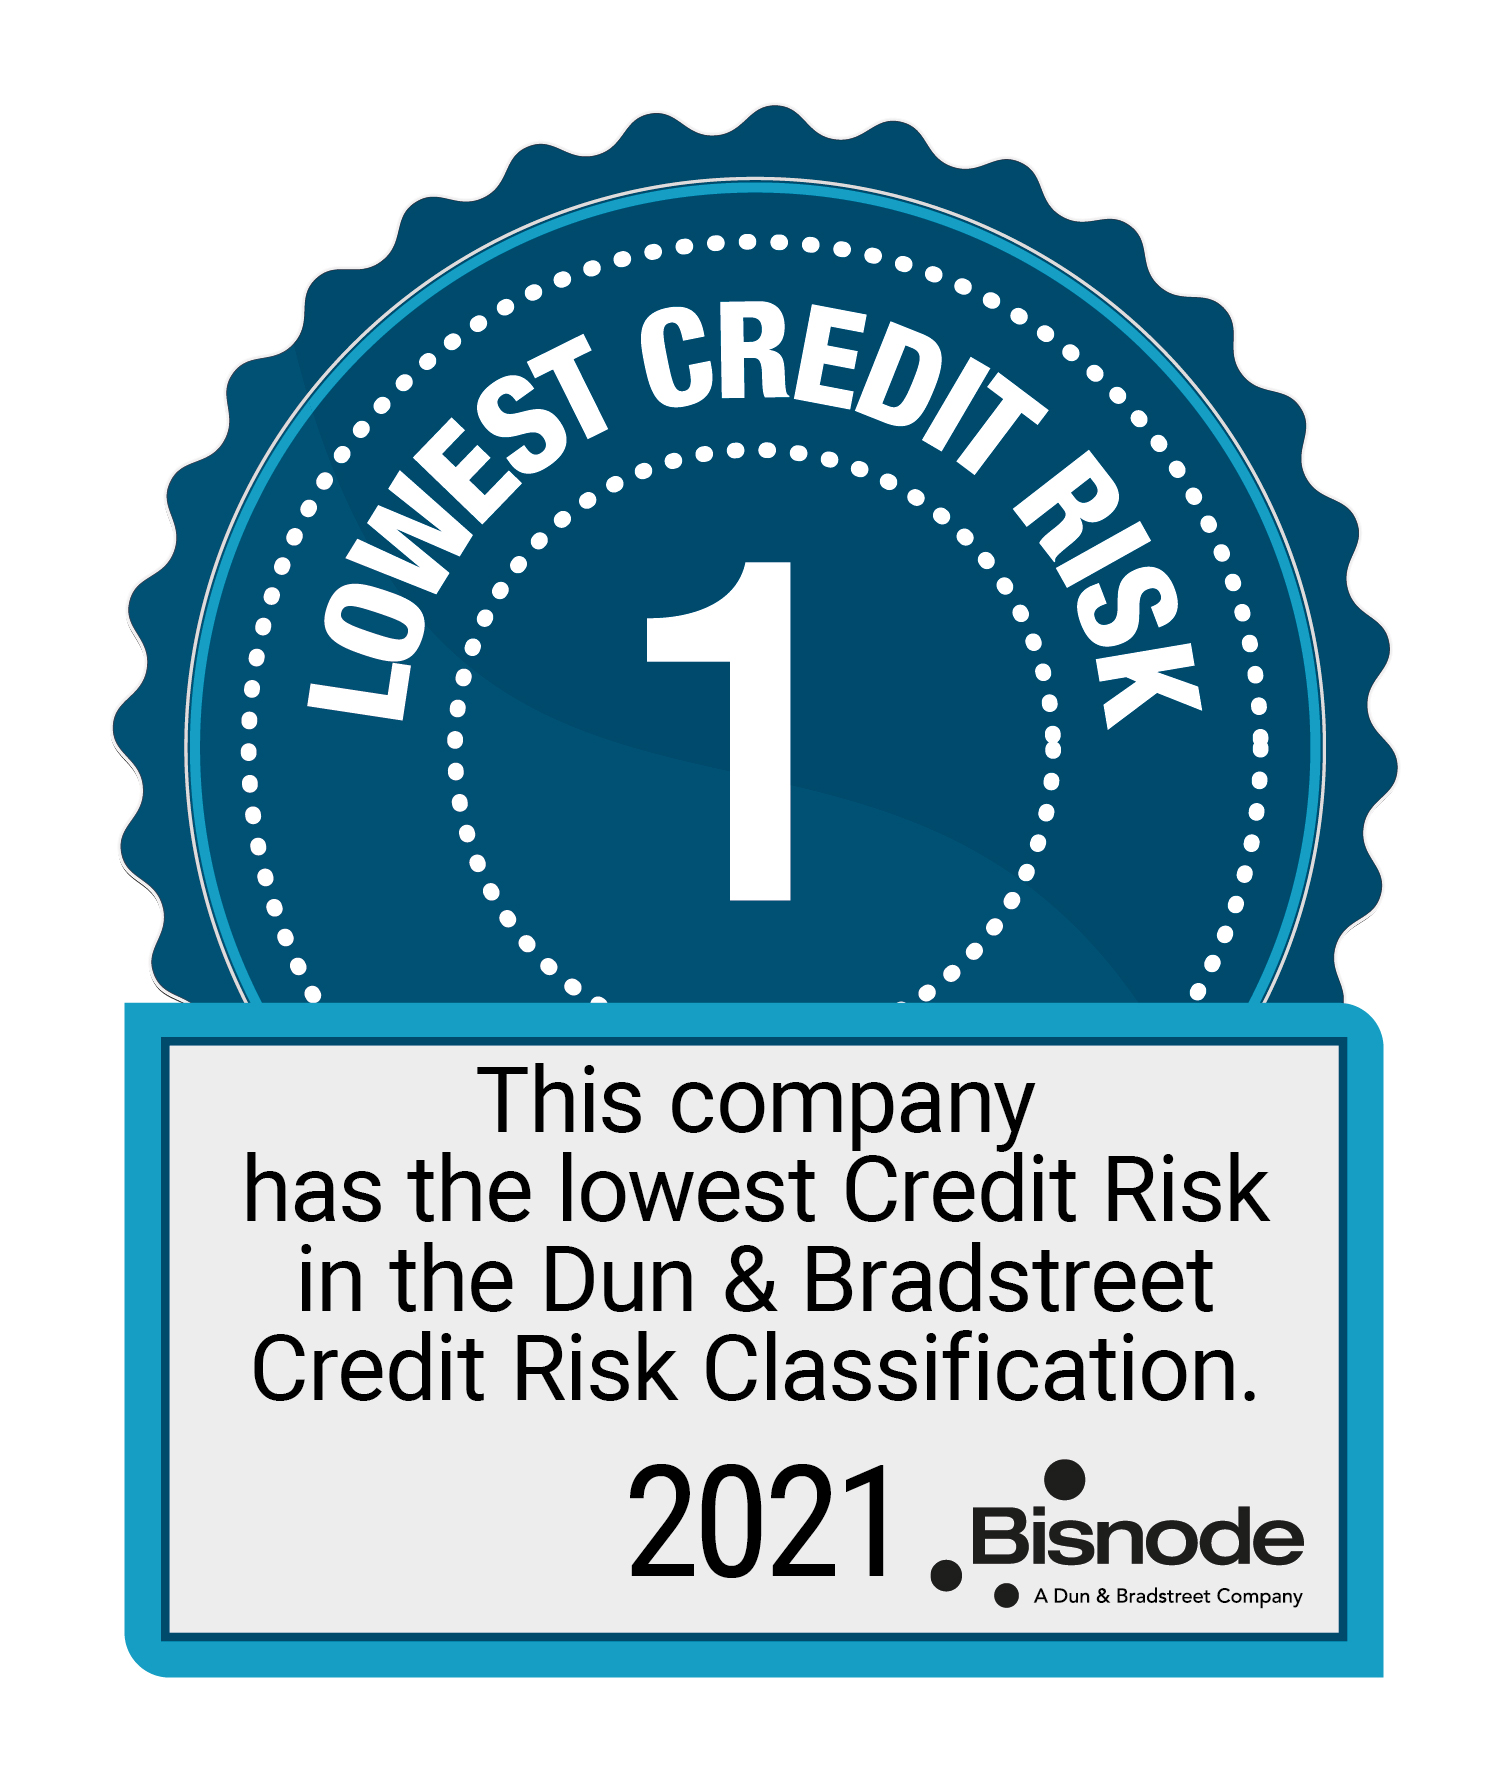 Lowest Credit Risk - Dun & Bradstreet Credit Risk Classification